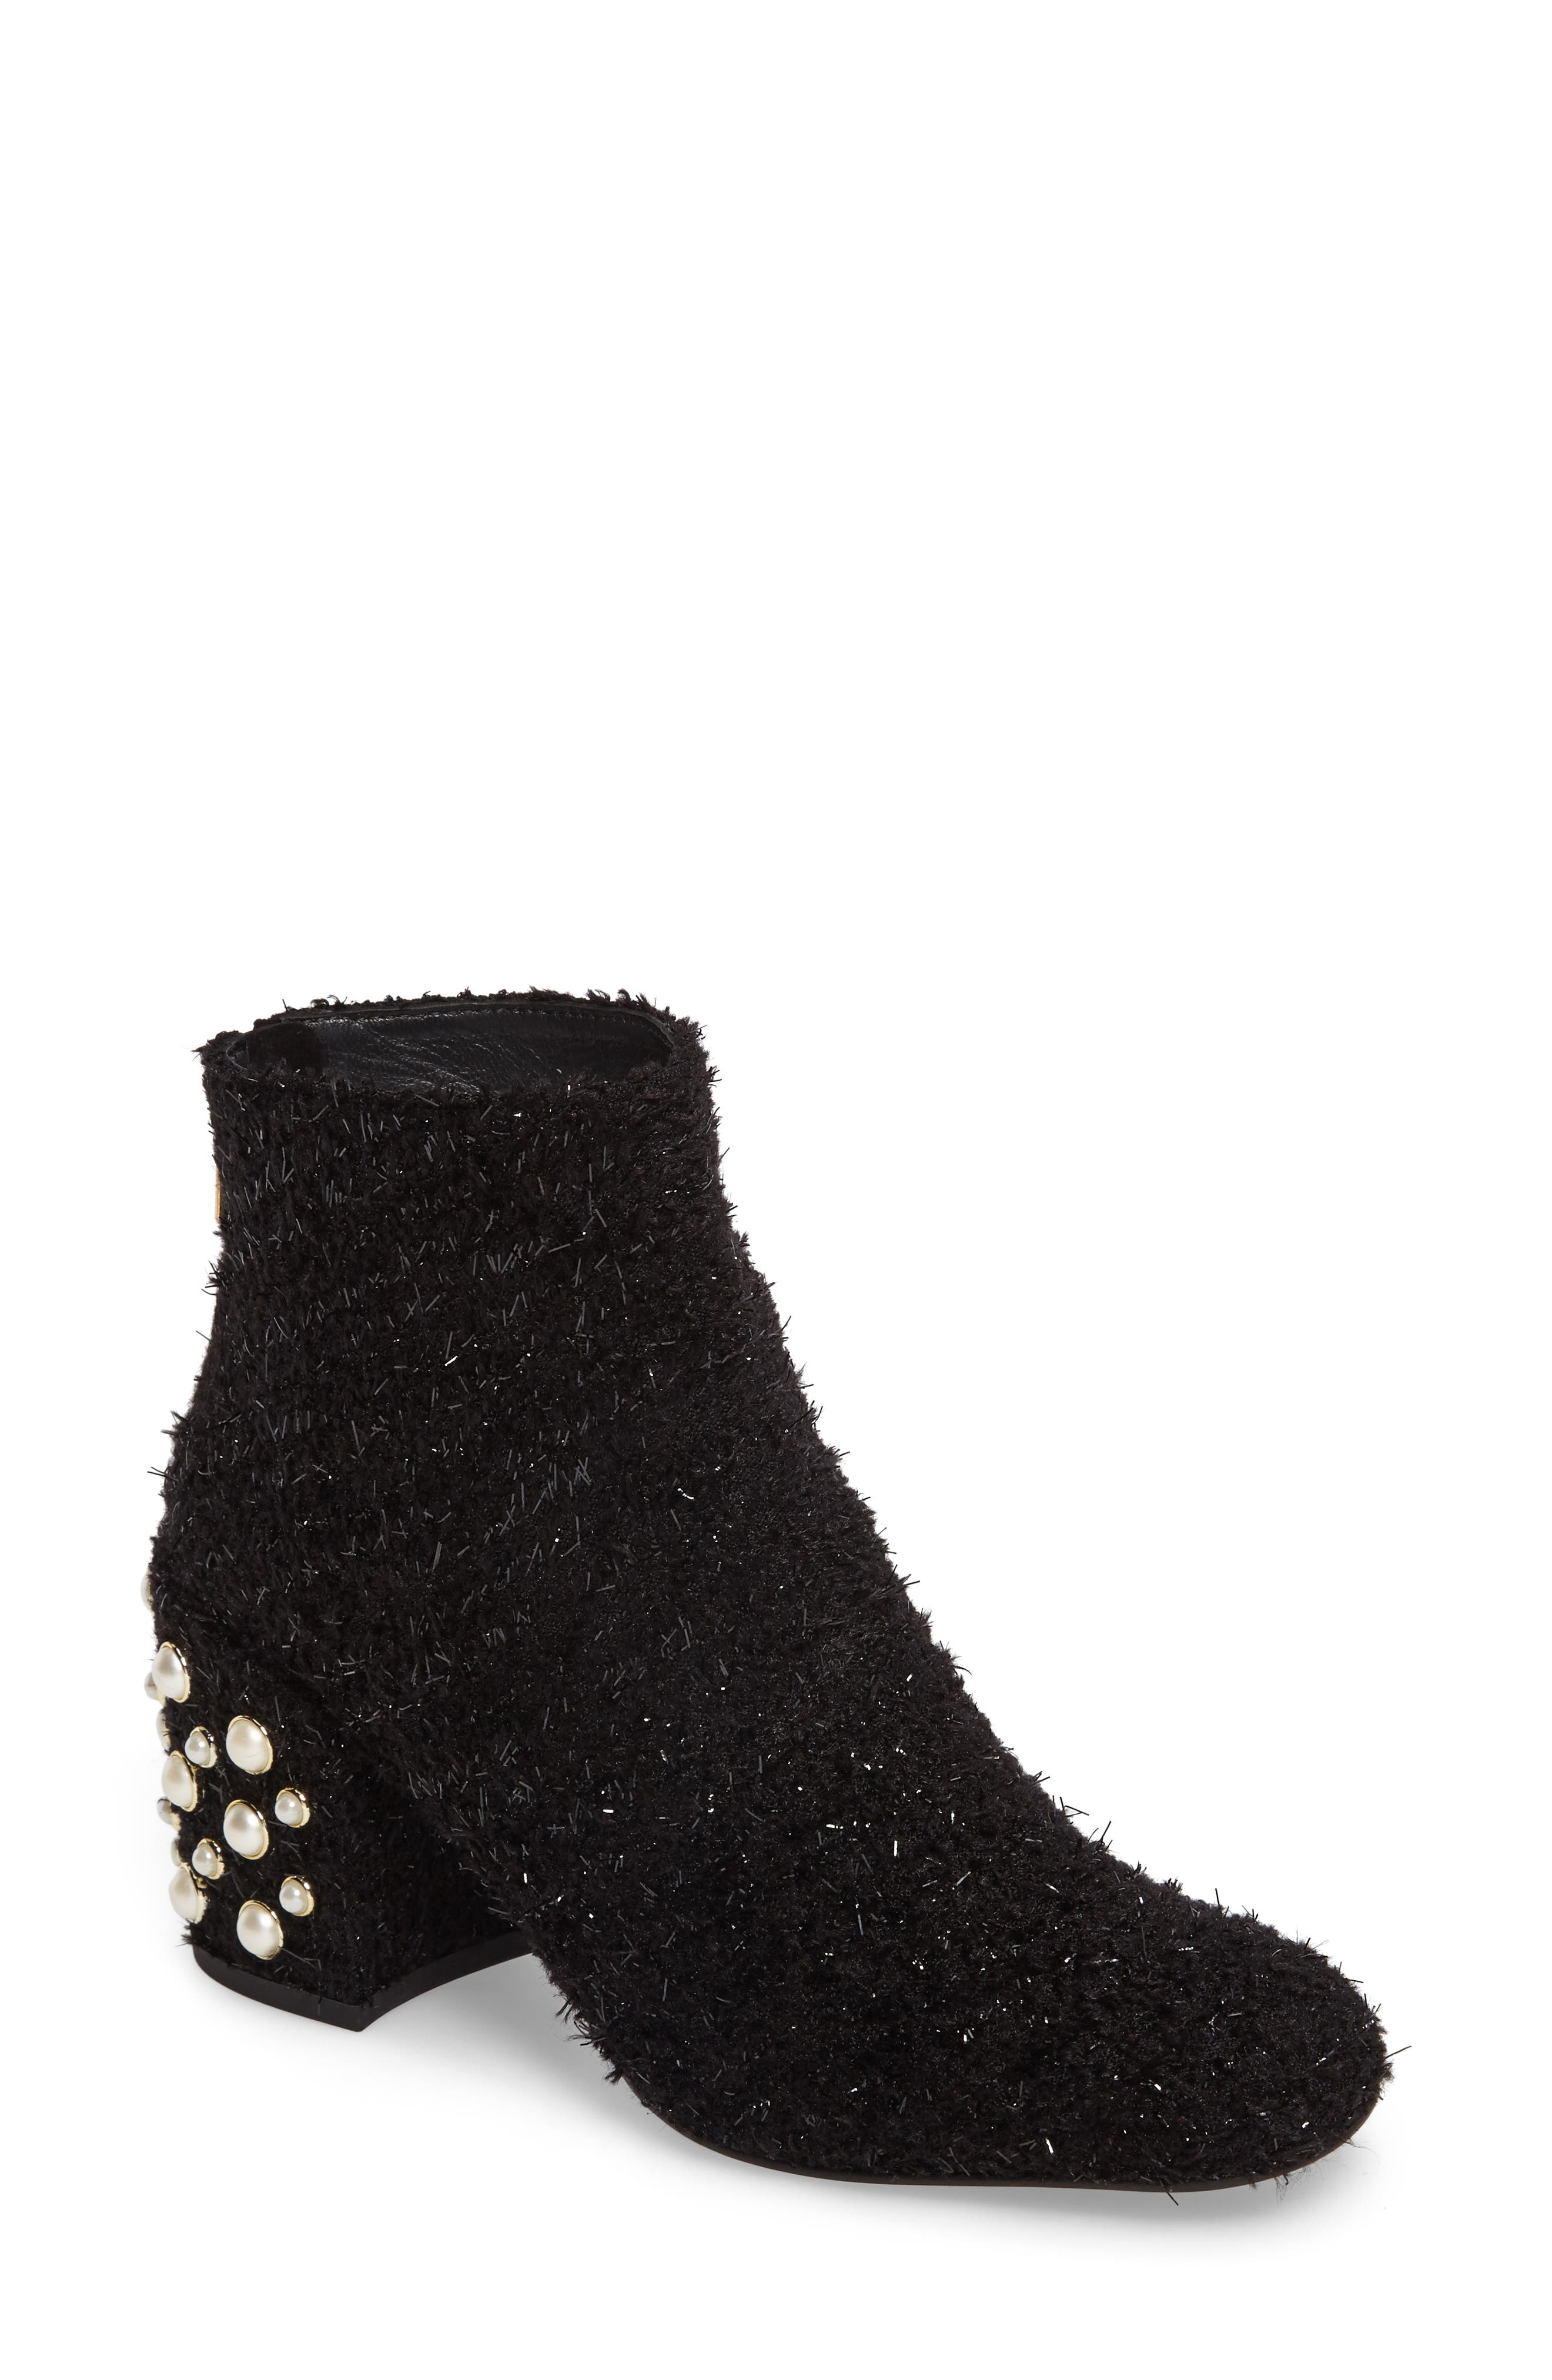 Pearlbacari Bootie,                         Main,                         color, Black Boucle